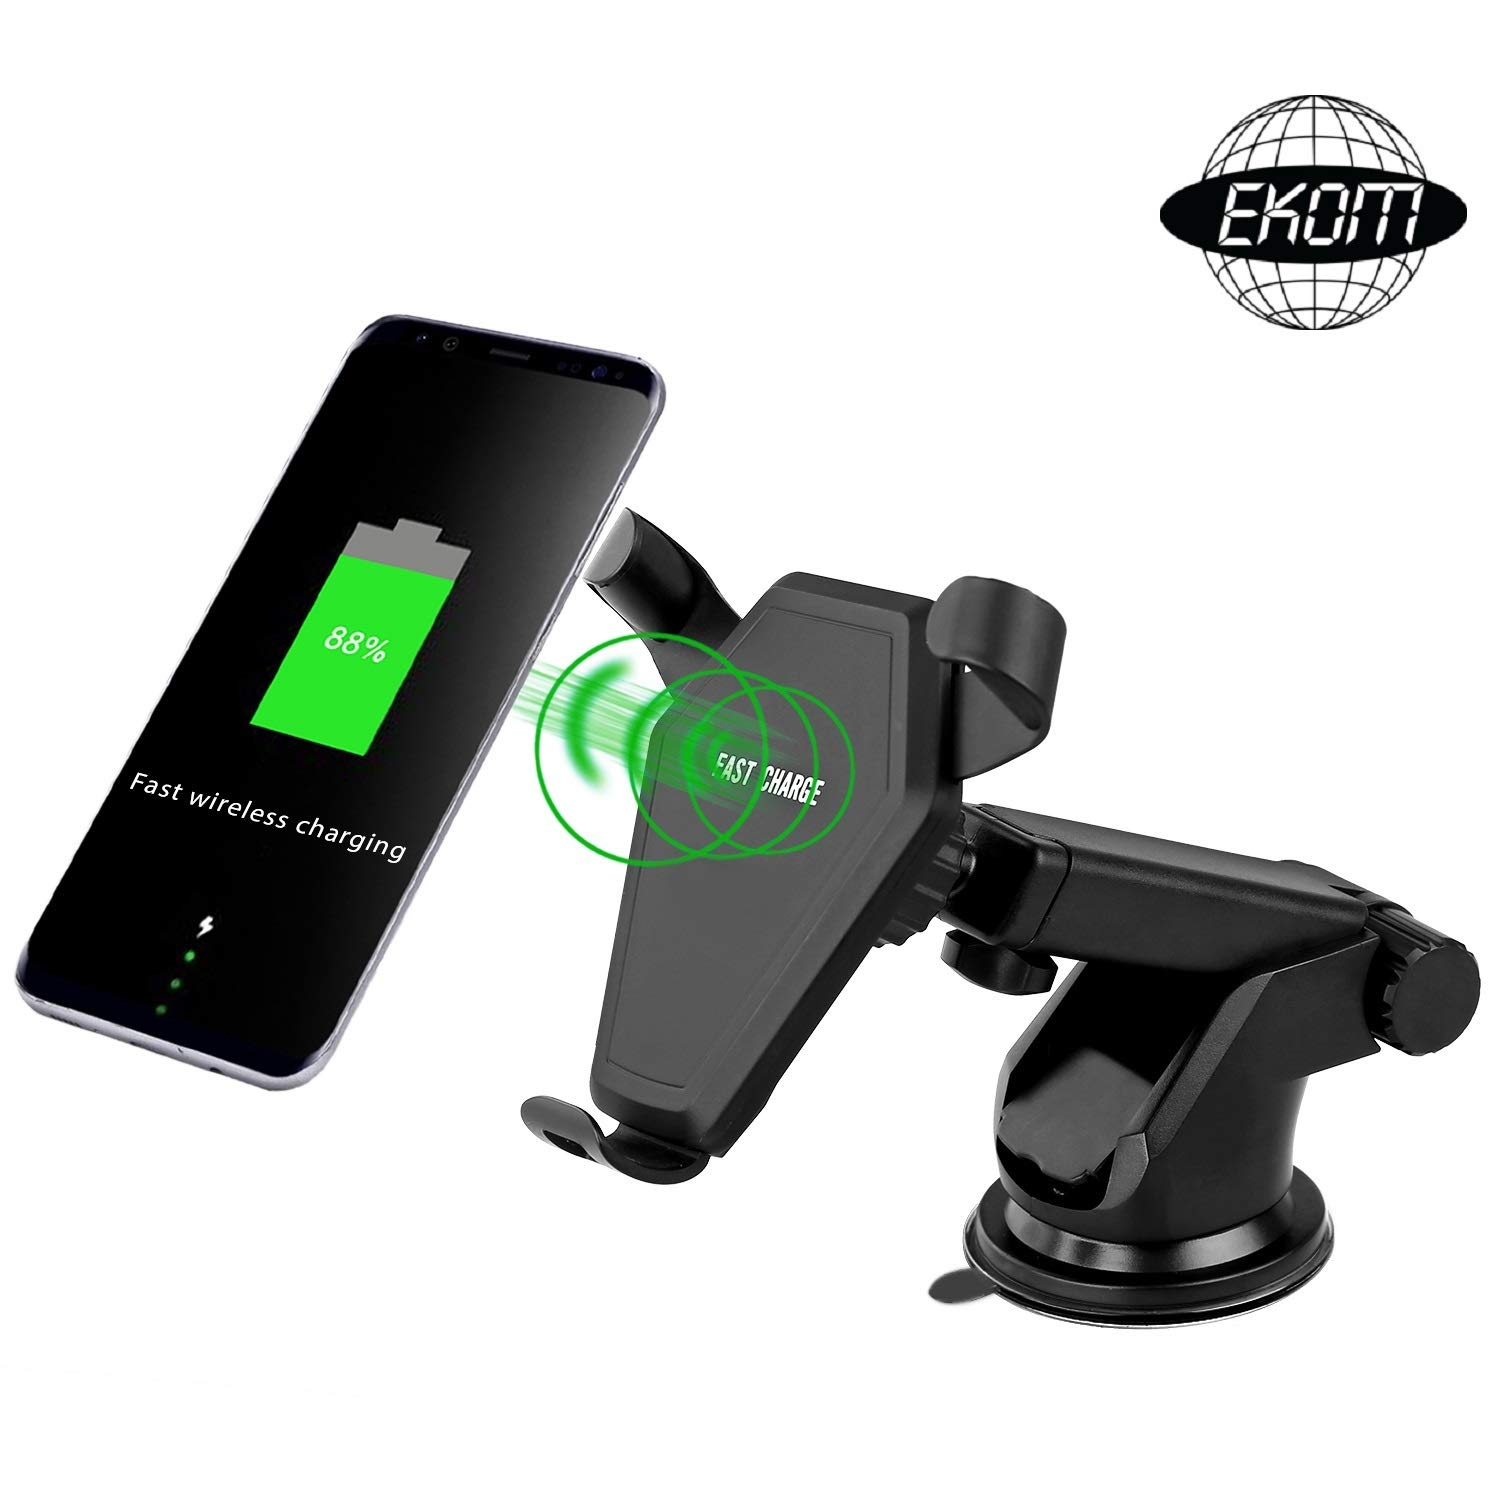 Wireless Car Charger, 10 W Fast Charging, Air Vent and Suction Mount, Compatible with iPhone X / 8/8 Plus, Compatible with Samsung Galaxy S6/ Edge S7 / S8 / S8 Plus, Note 5/8/9, Qi Enabled